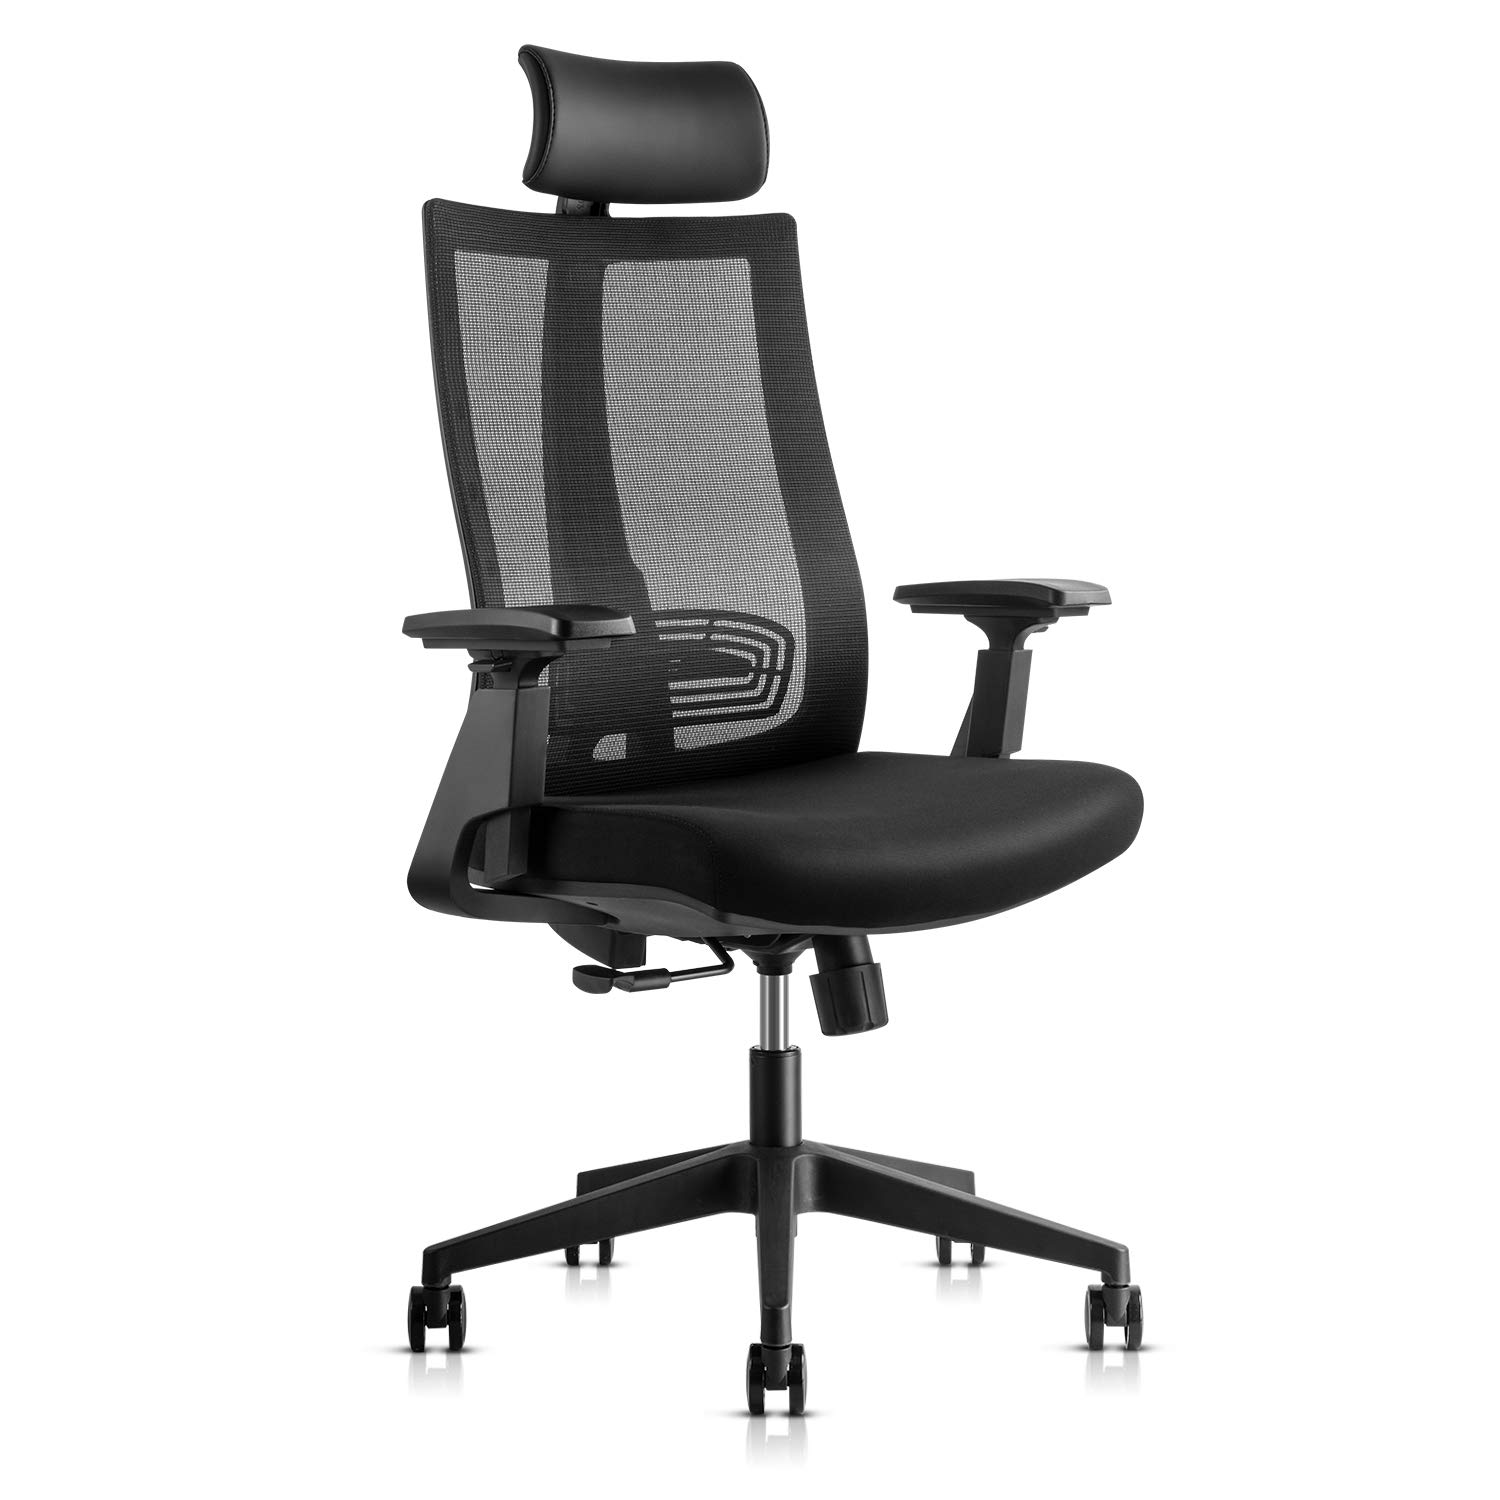 Ergonomic Adjustable Office Chair, High Back Computer Desk Chair with Lumbar Support, 3D Armrest, Headrest and Soft Seat Cushion Reclining Mesh Chair by Gabrylly